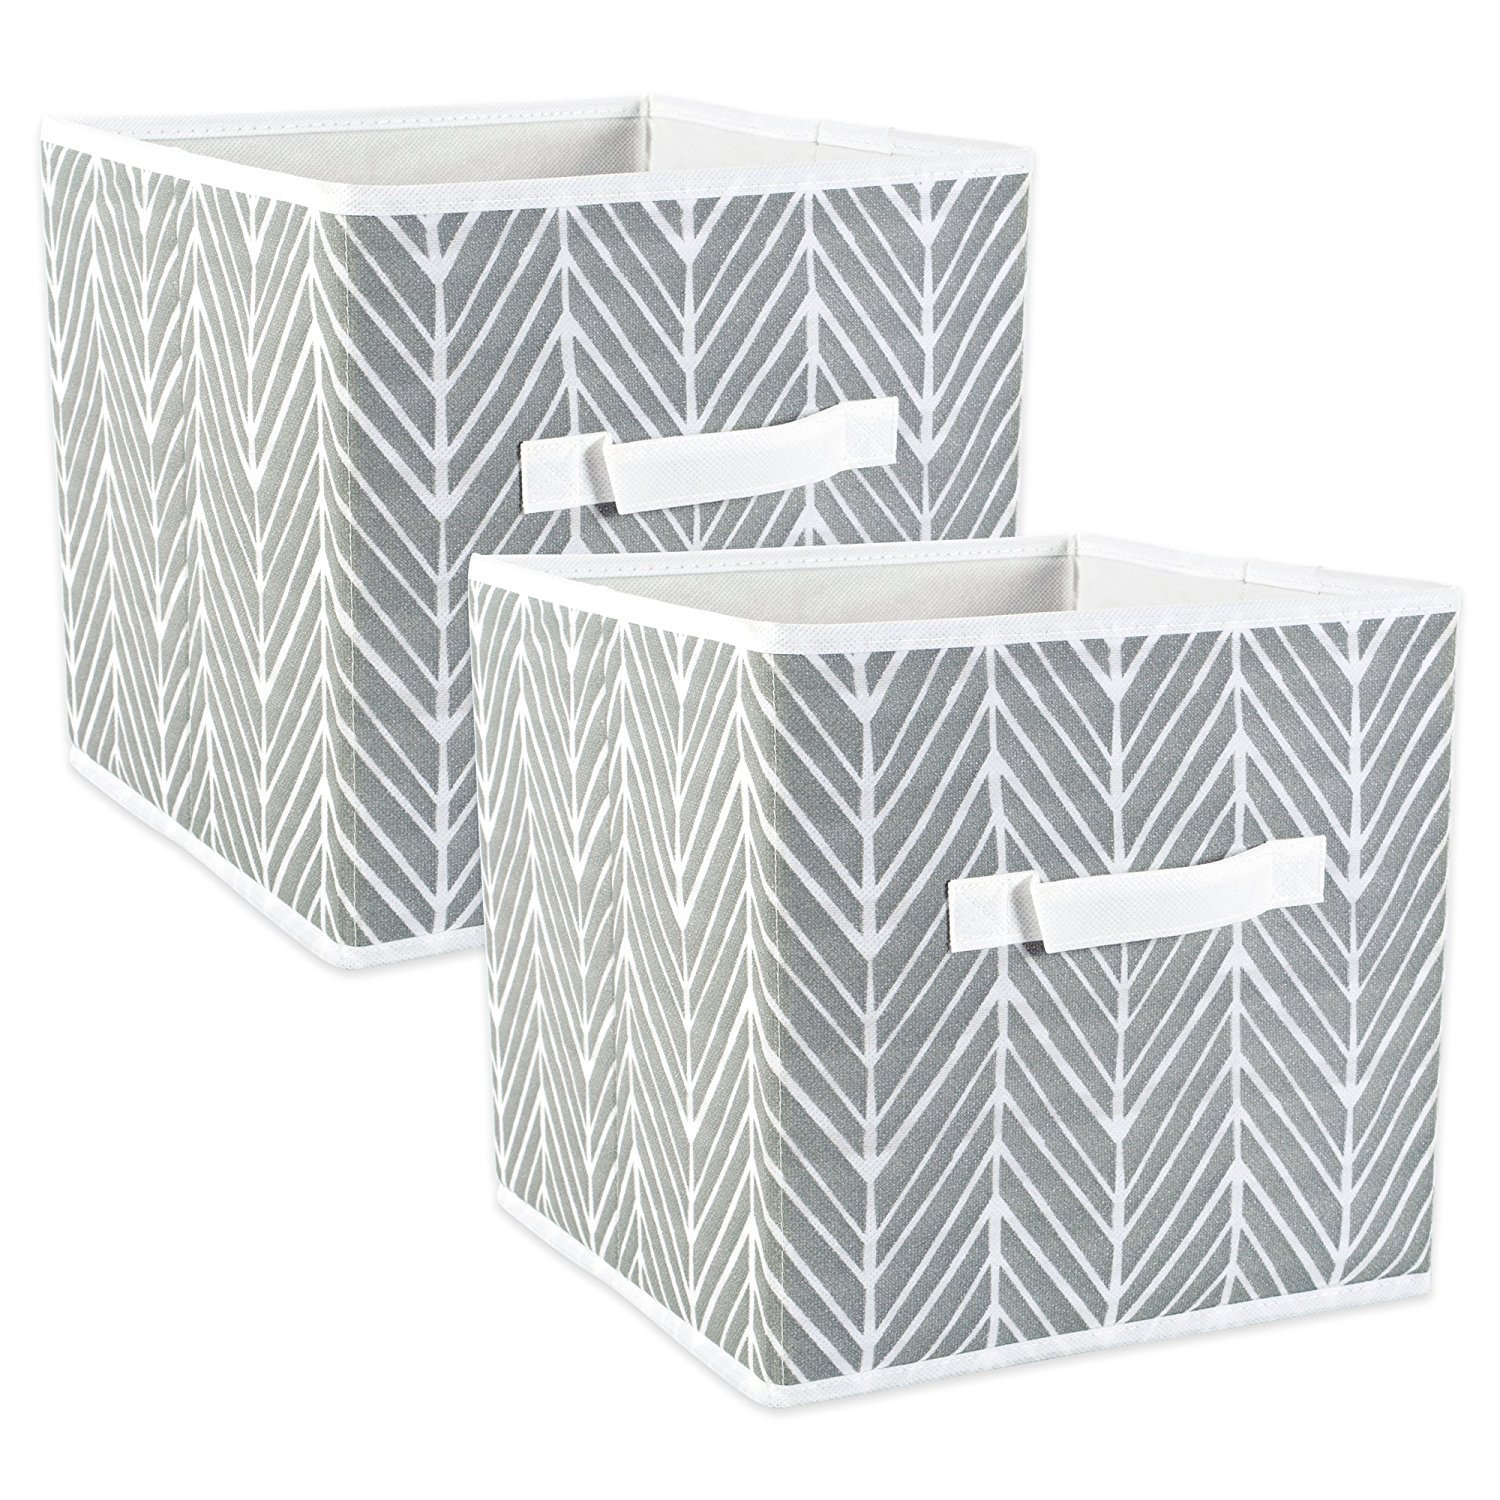 DII Fabric Storage Bins for Nursery, Offices, Home Organization, Containers Are Made To Fit Standard Cube Organizers (13x13x13) Herringbone Grey - Set of 2